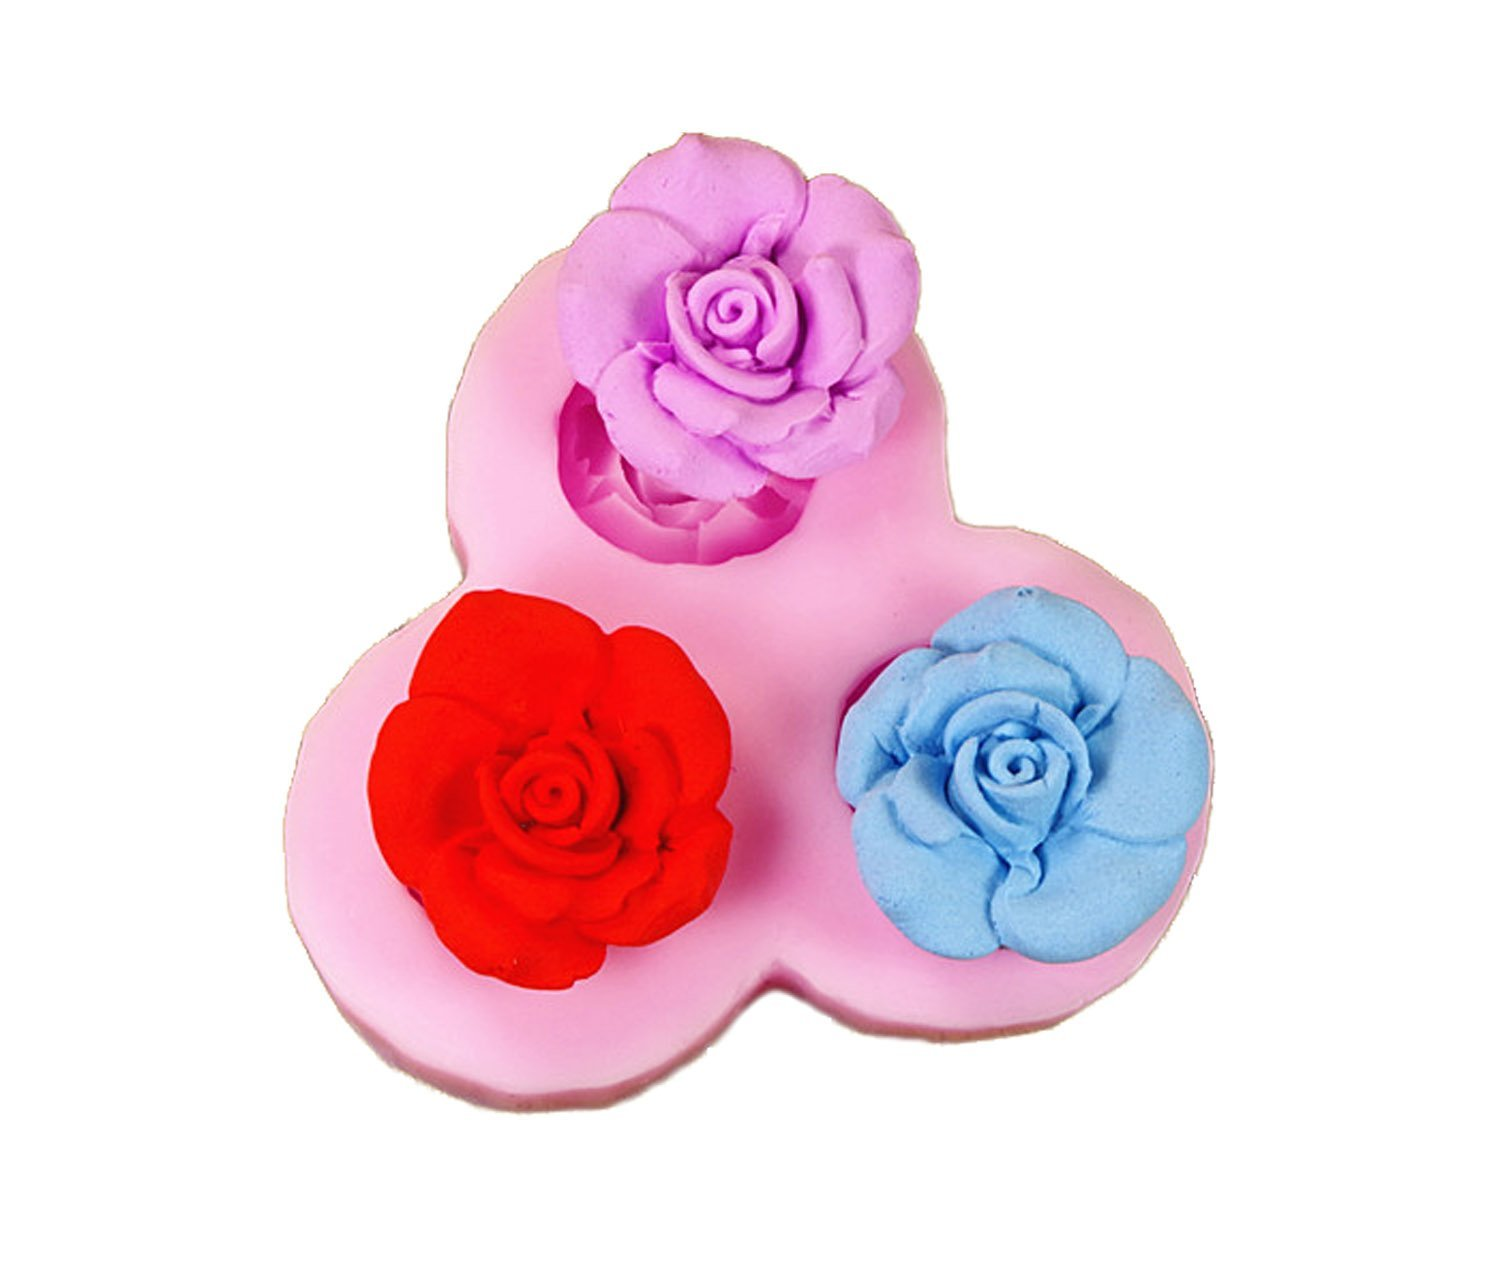 Longzang F0070 Flower Fondant Silicone Sugar Craft Mold, Mini, Pink F488